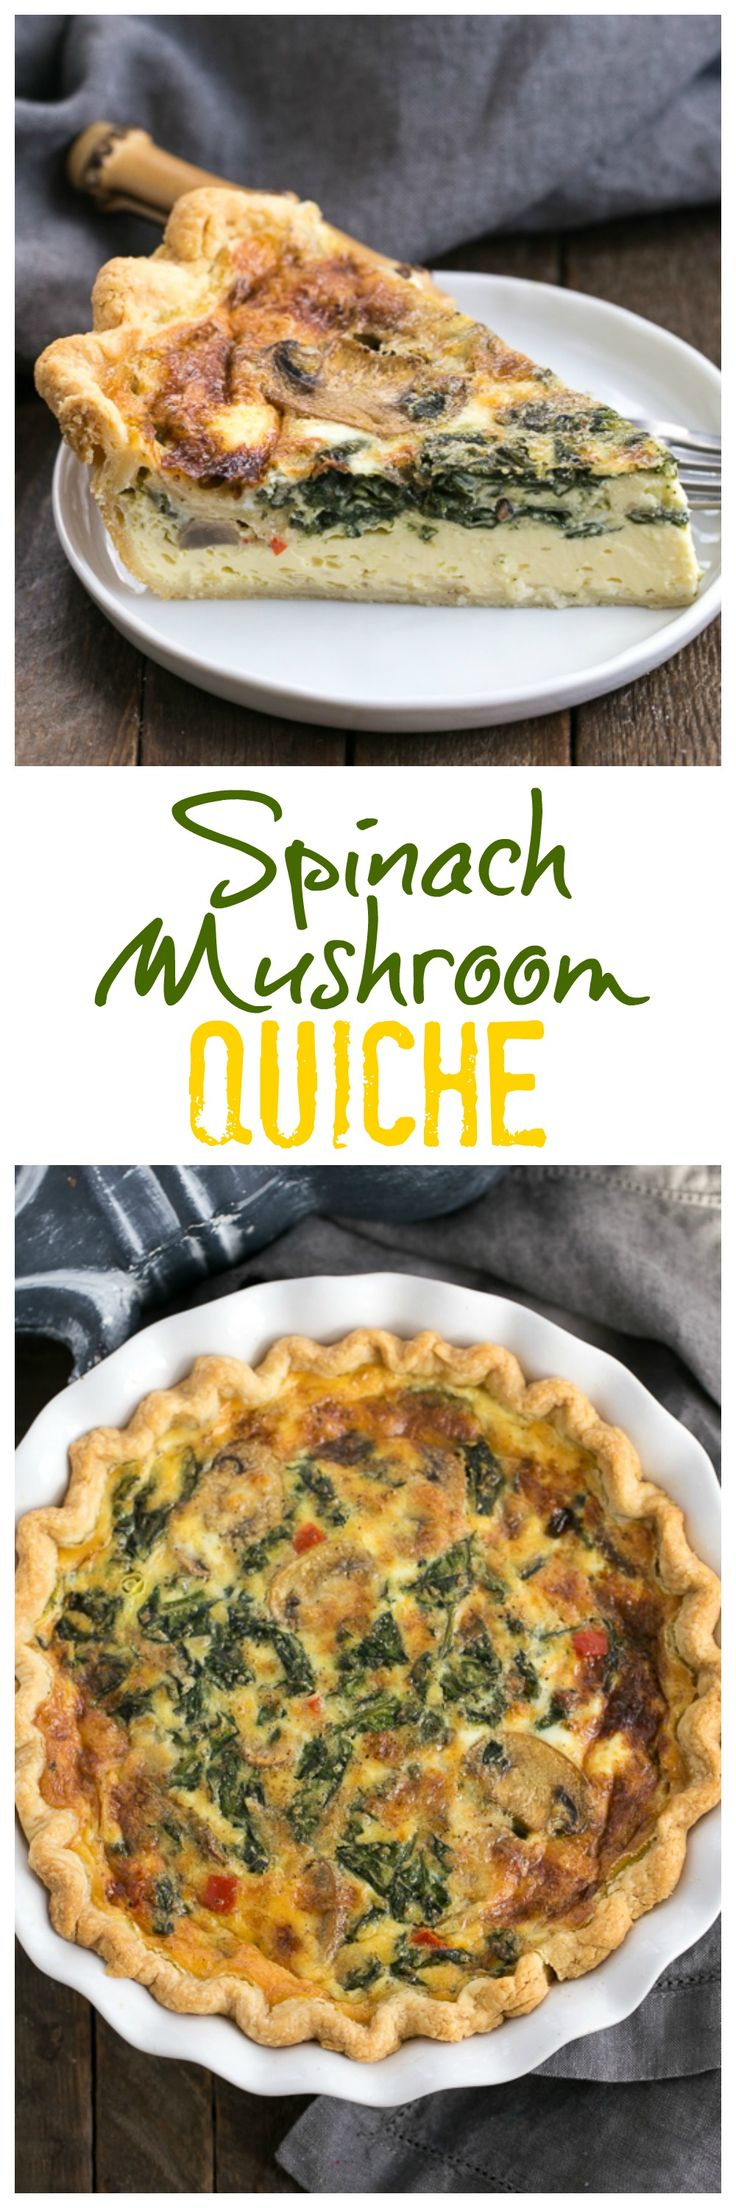 Spinach Mushroom Quiche | A rich, tender quiche full of cheese and vegetables @lizzydo